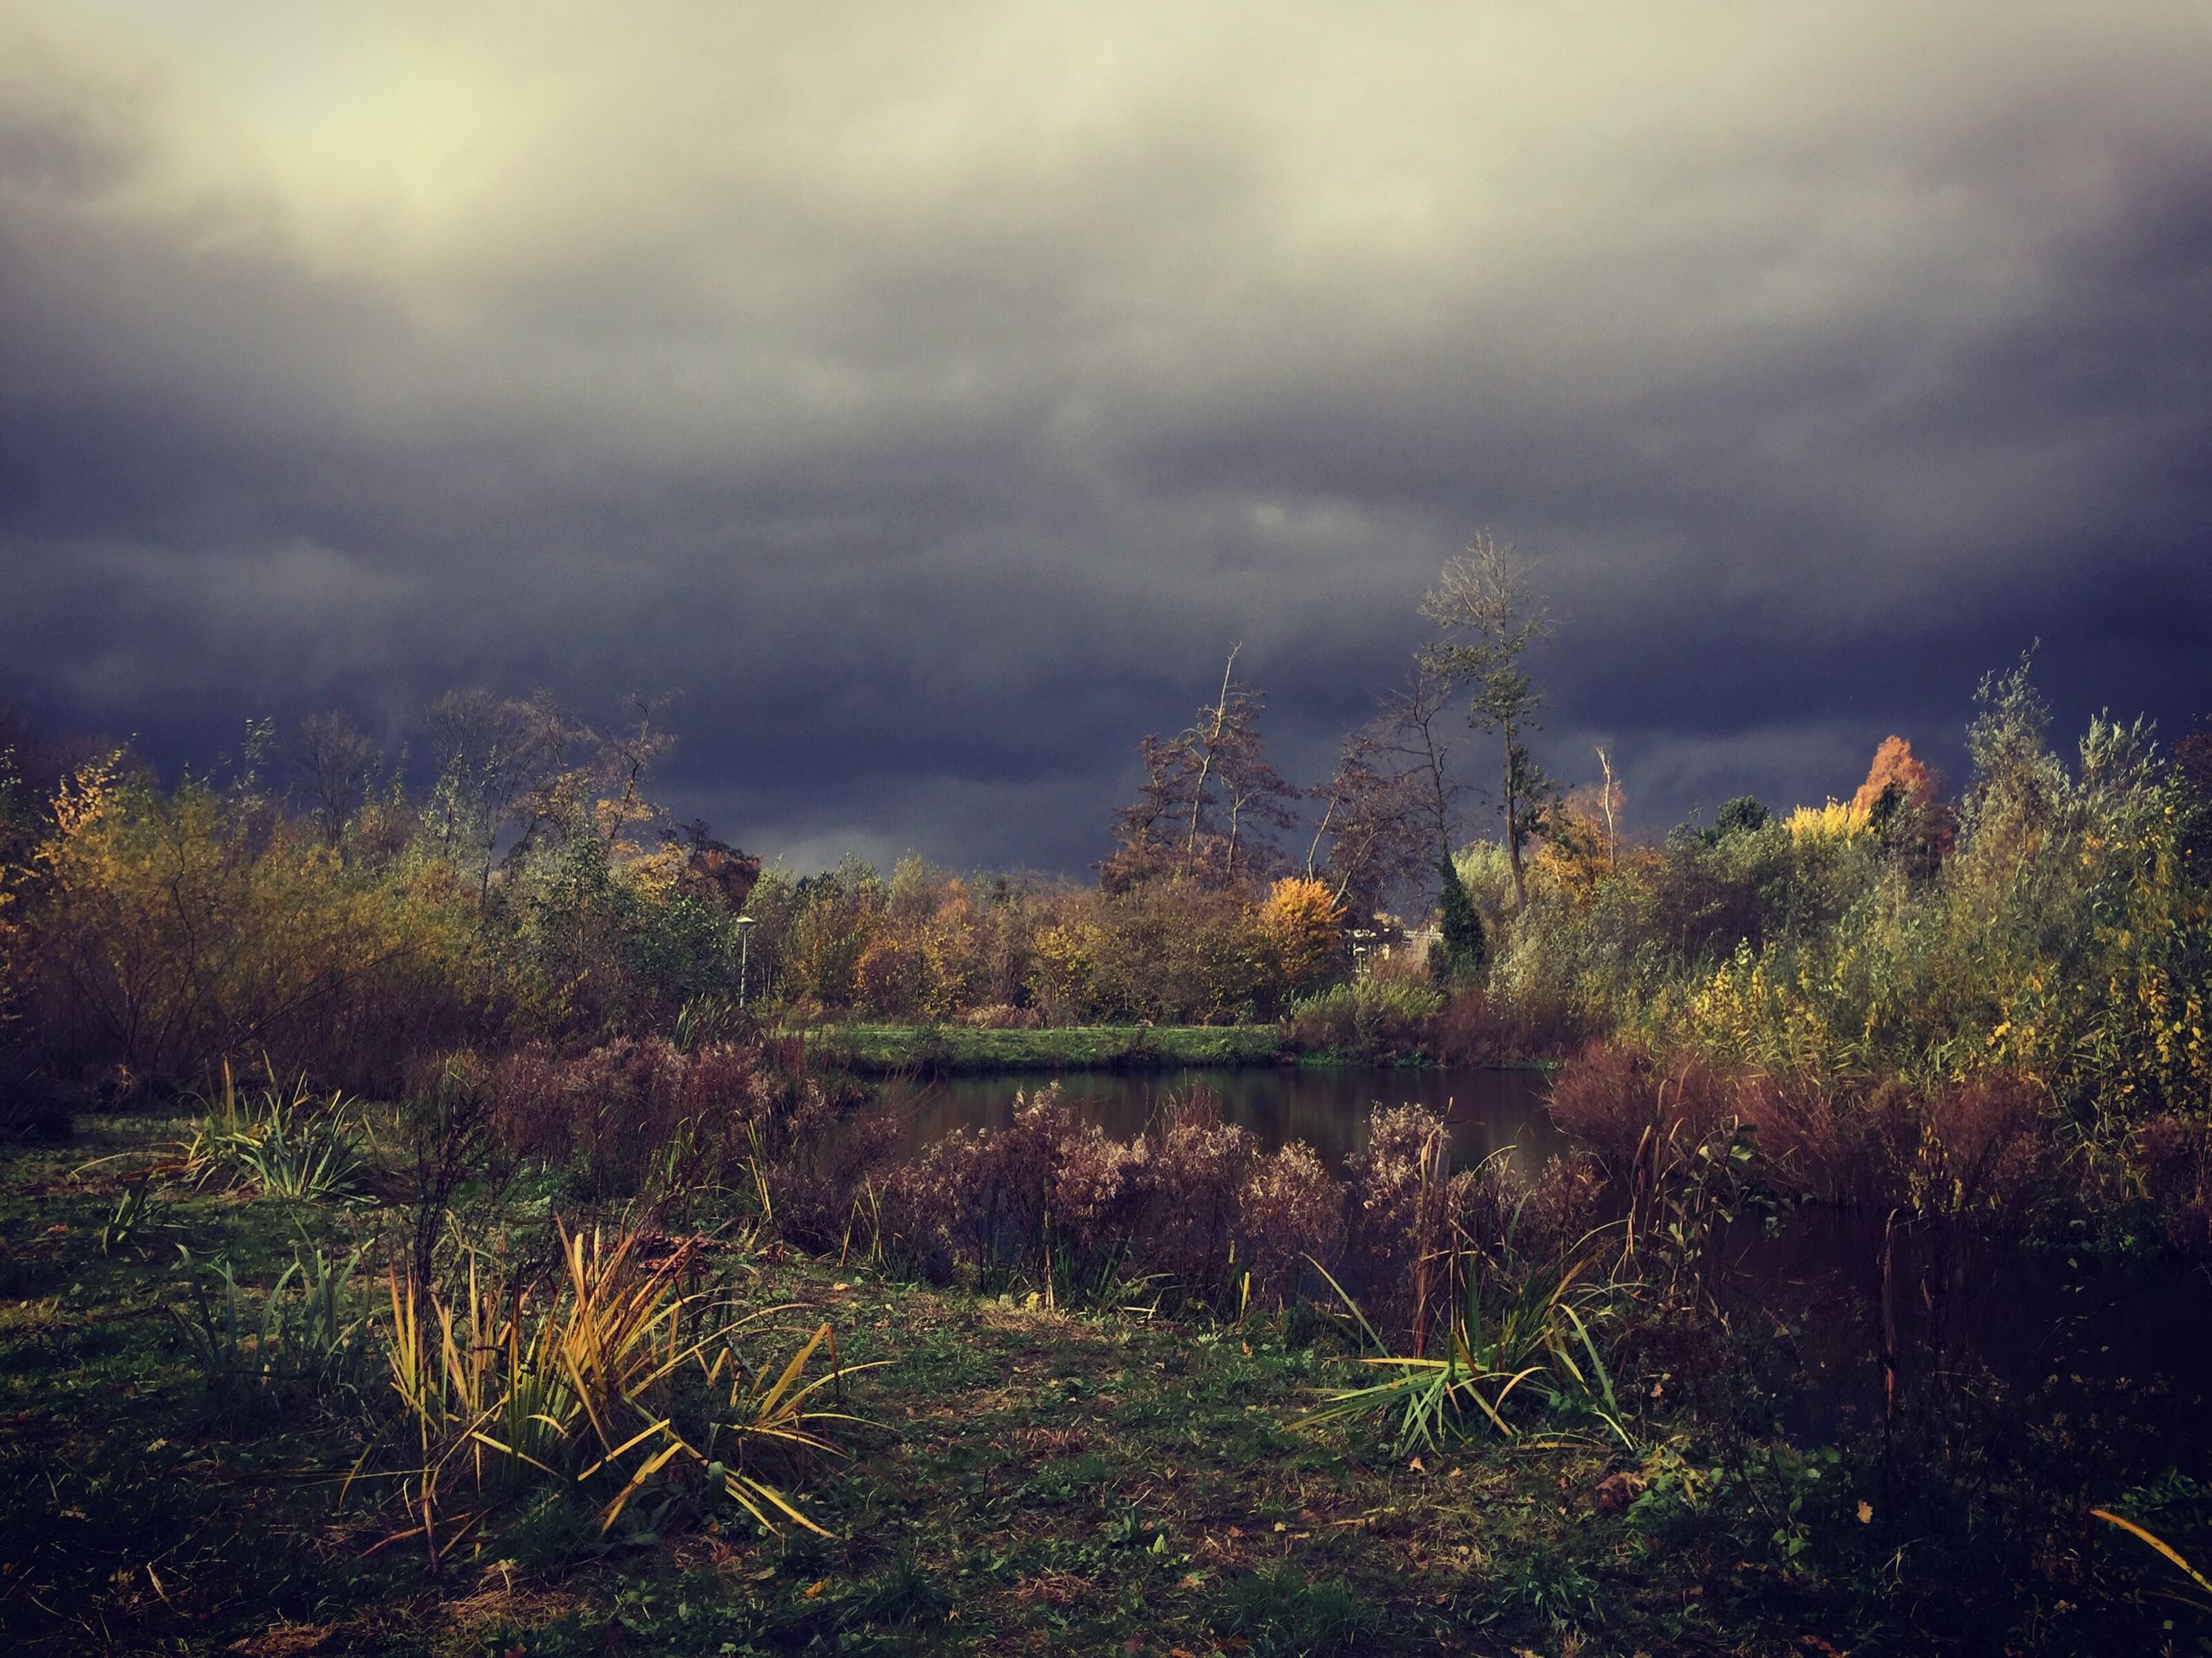 growth, sky, nature, plant, flower, cloud - sky, tree, beauty in nature, no people, outdoors, field, day, fragility, storm cloud, water, architecture, freshness